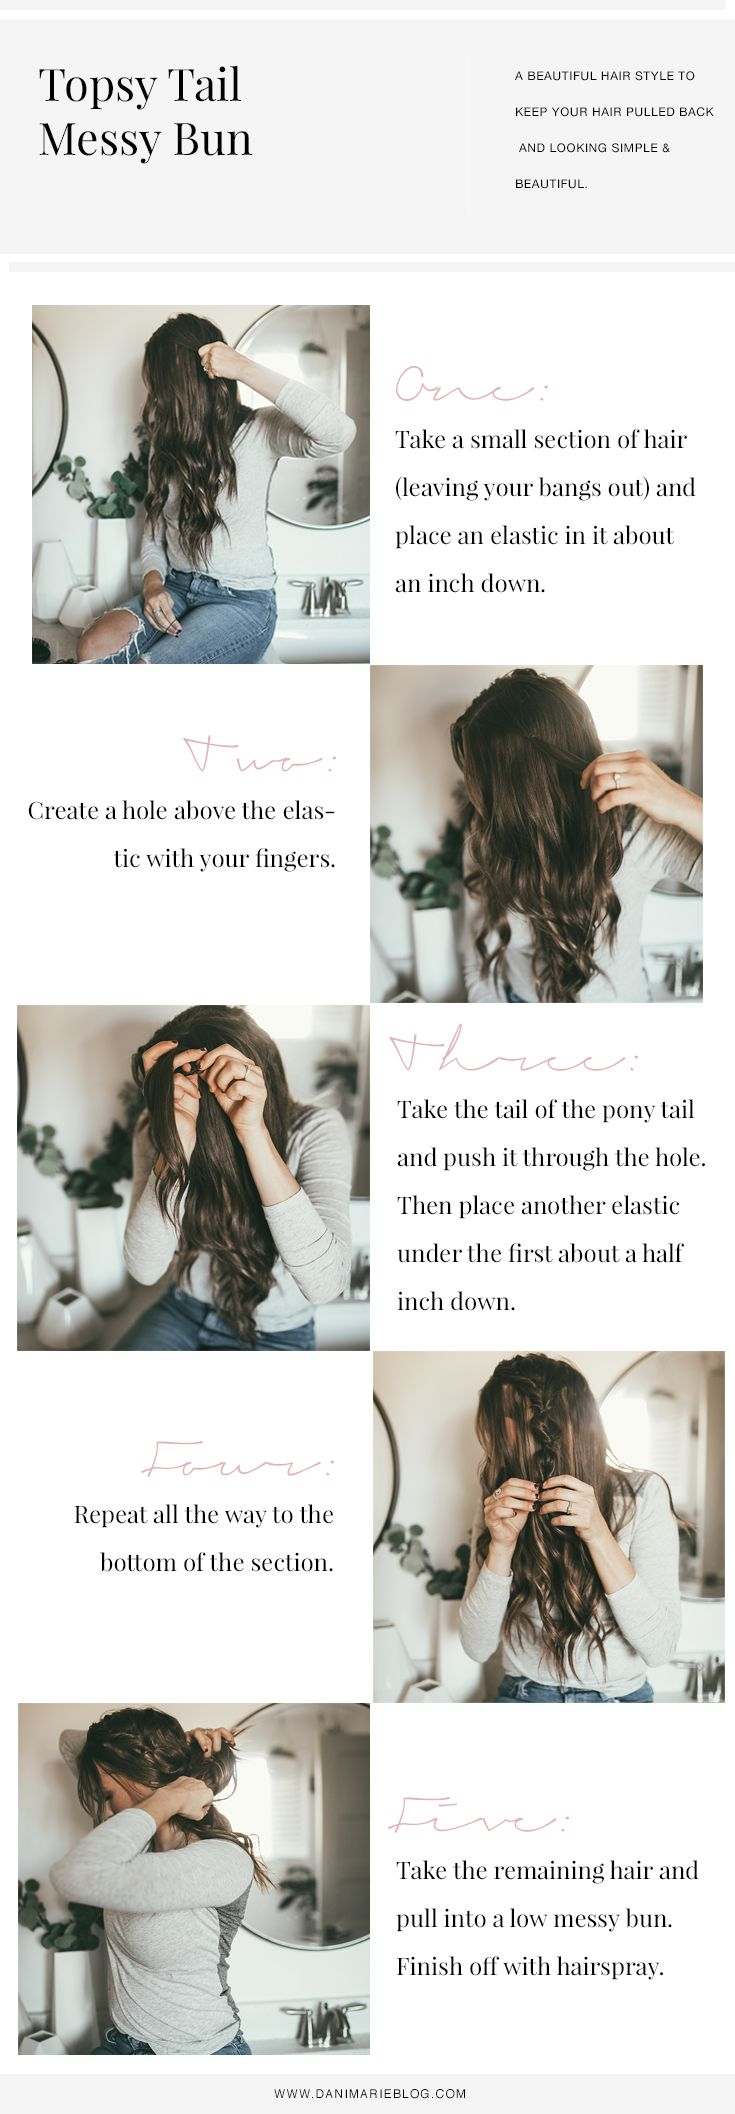 Pin this ASAP if you have been looking for the best EASY yet stylish hair tutorial? Utah Style Blogger Dani Marie is sharing the perfect topsy tail bun tutorial that everyone will love. See it HERE! #topsytail #bunhairtutorial #hairstyle #hairtutorial #easyhairstyle #danimarie